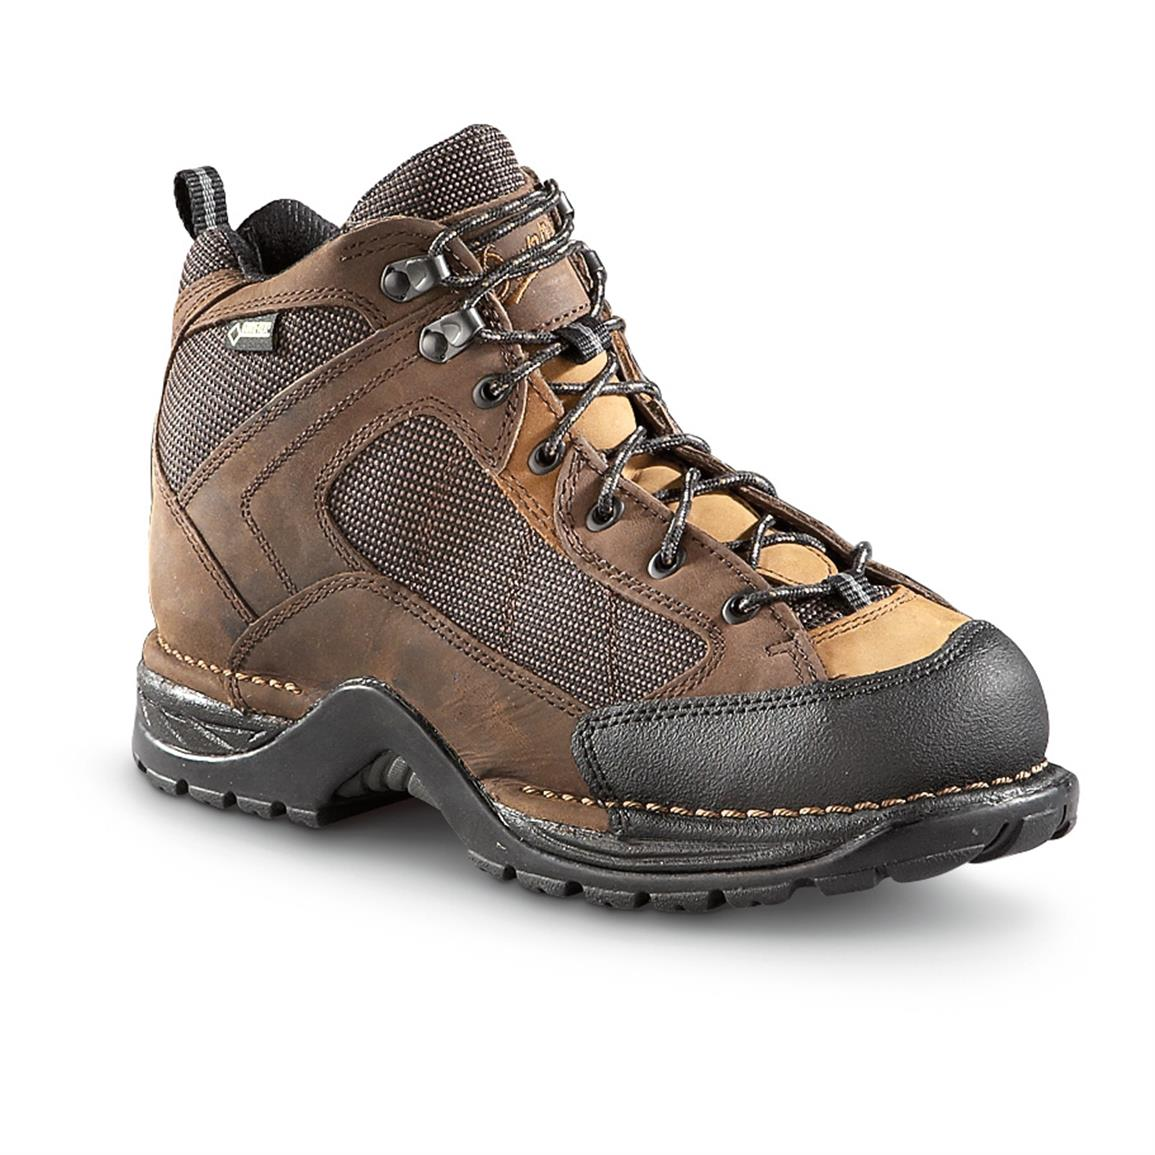 Danner® Radical 452 Hiking Boots, Dark Brown